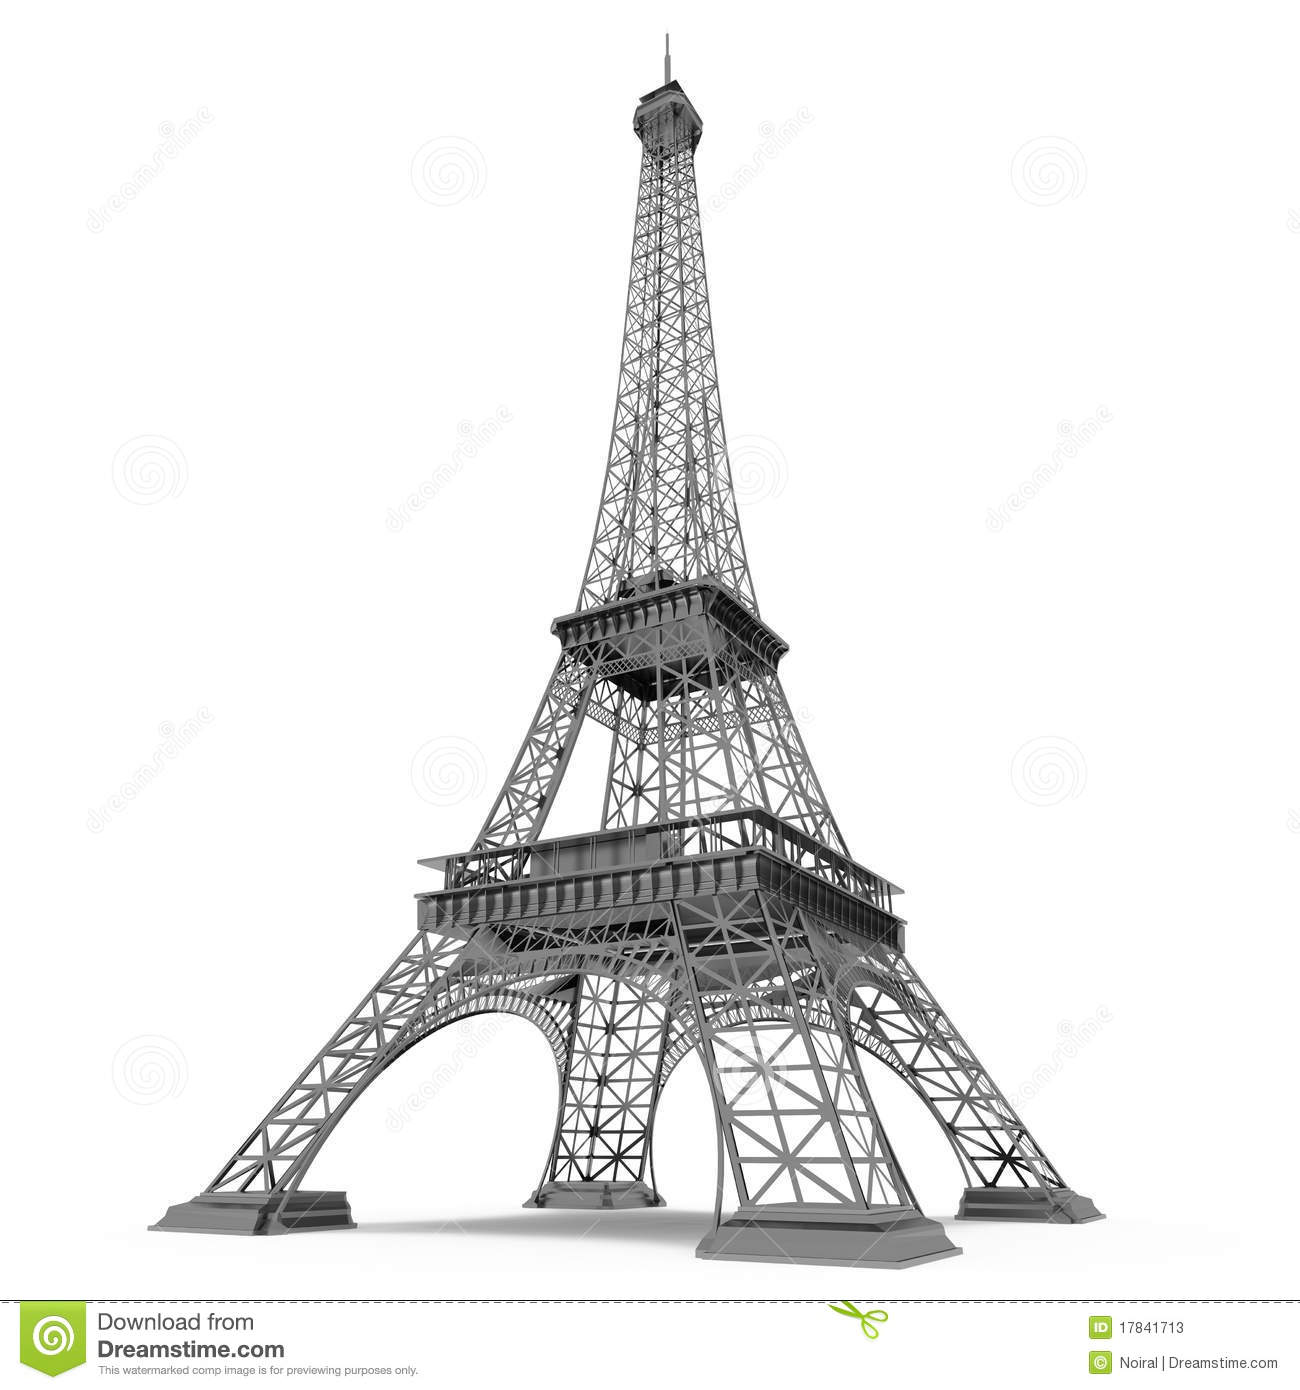 Eiffel tower in paris stock illustration image of for Torre enfel